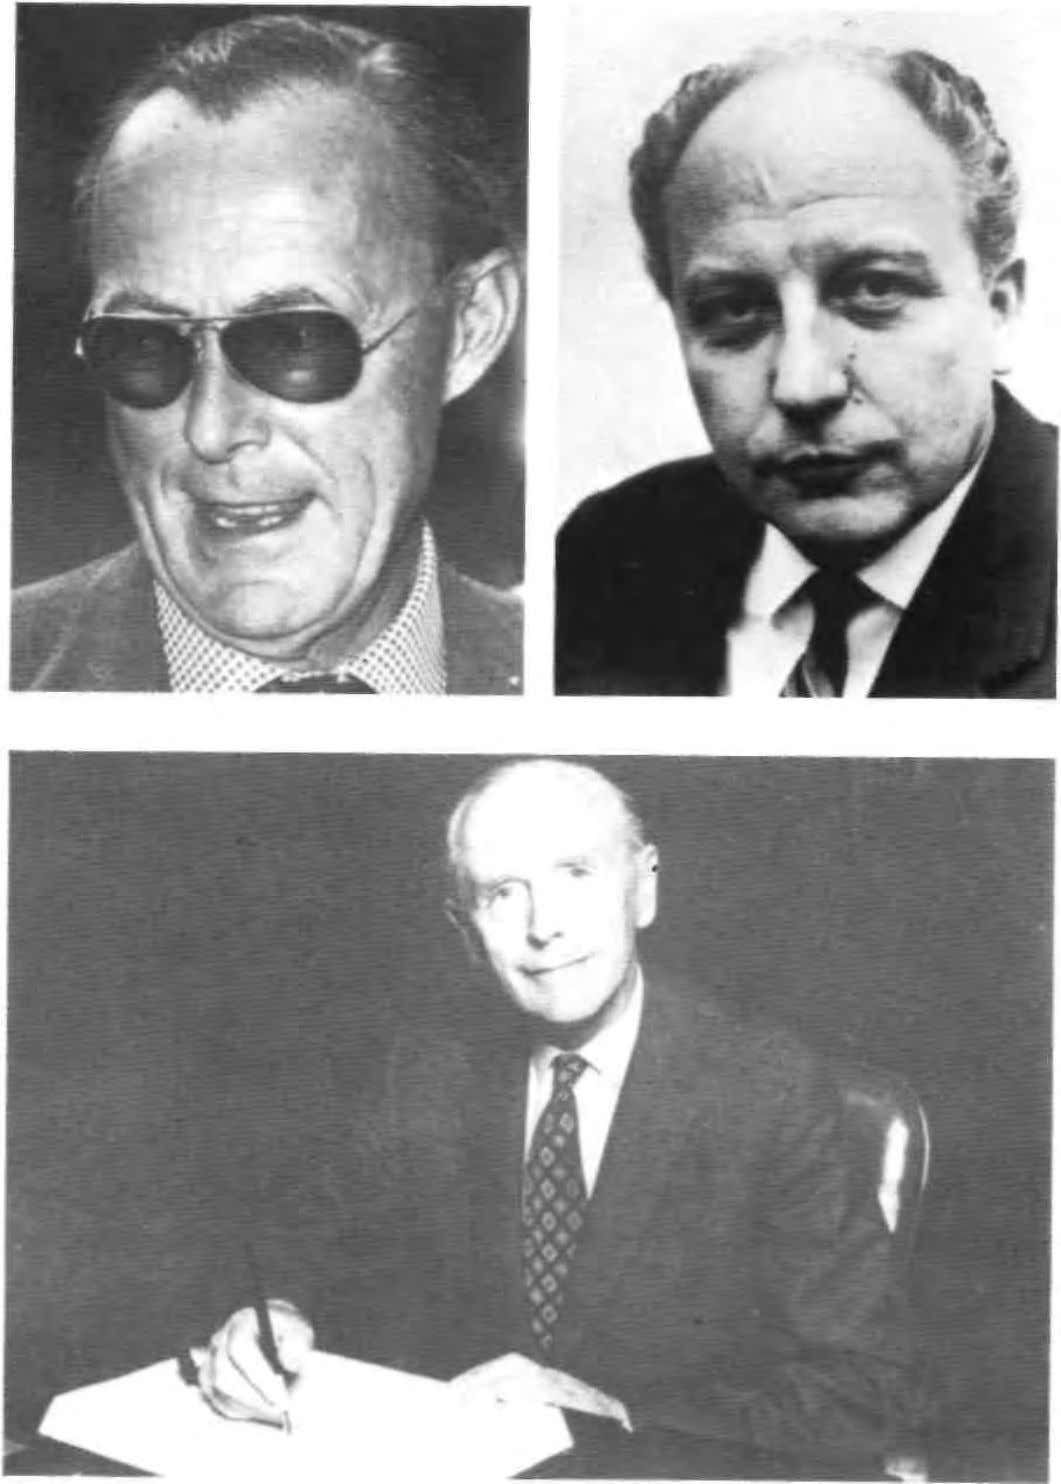 Above left: Prince Bernhard of the Netherlands, Chairman of Bilderberg from 1954 until 1976 (Popper